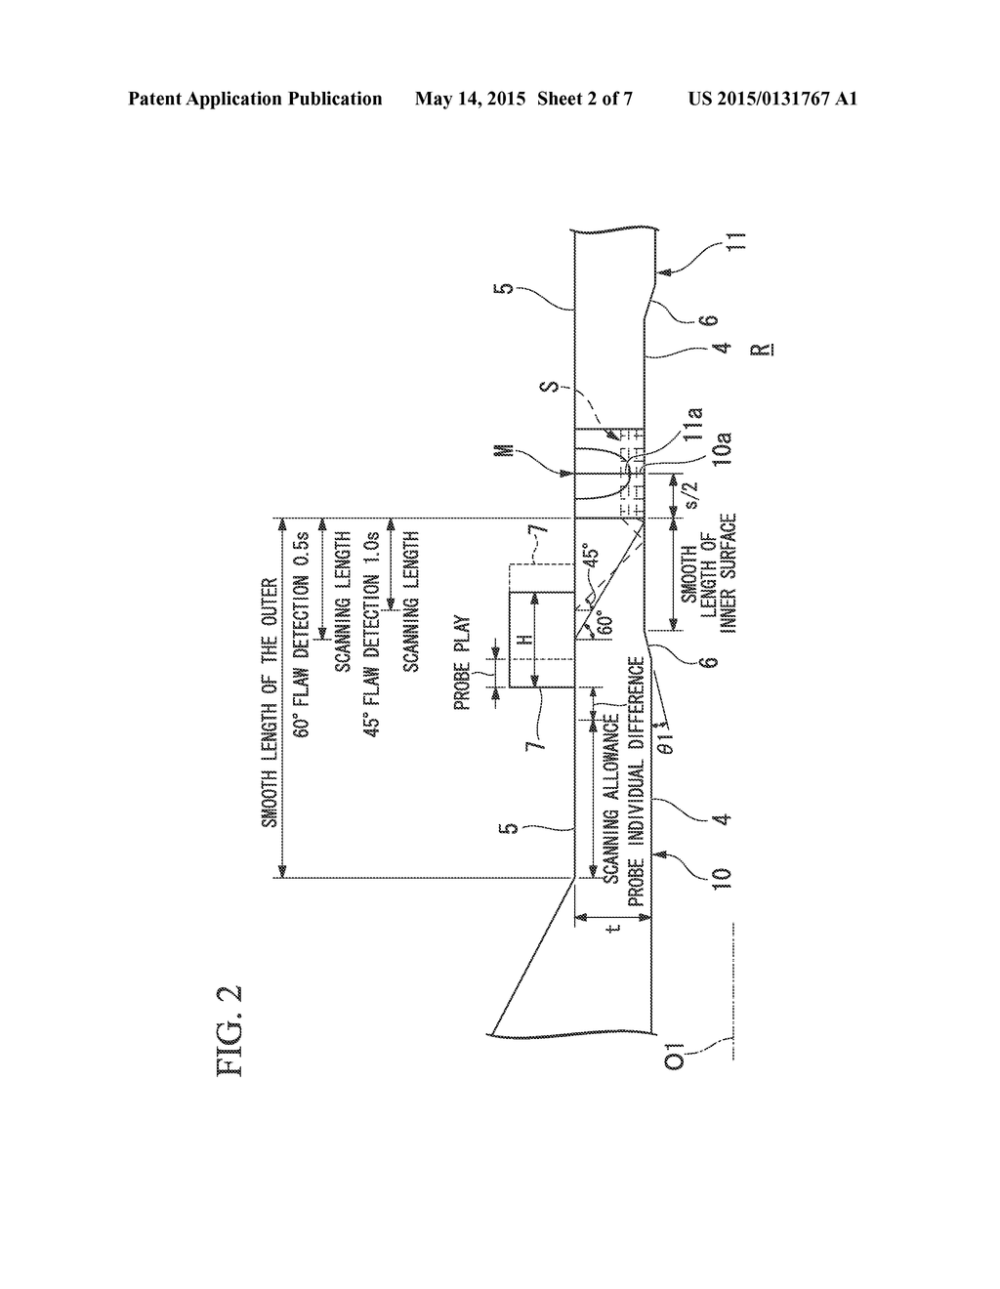 medium resolution of construction method tubular member and nuclear power plant diagram schematic and image 03